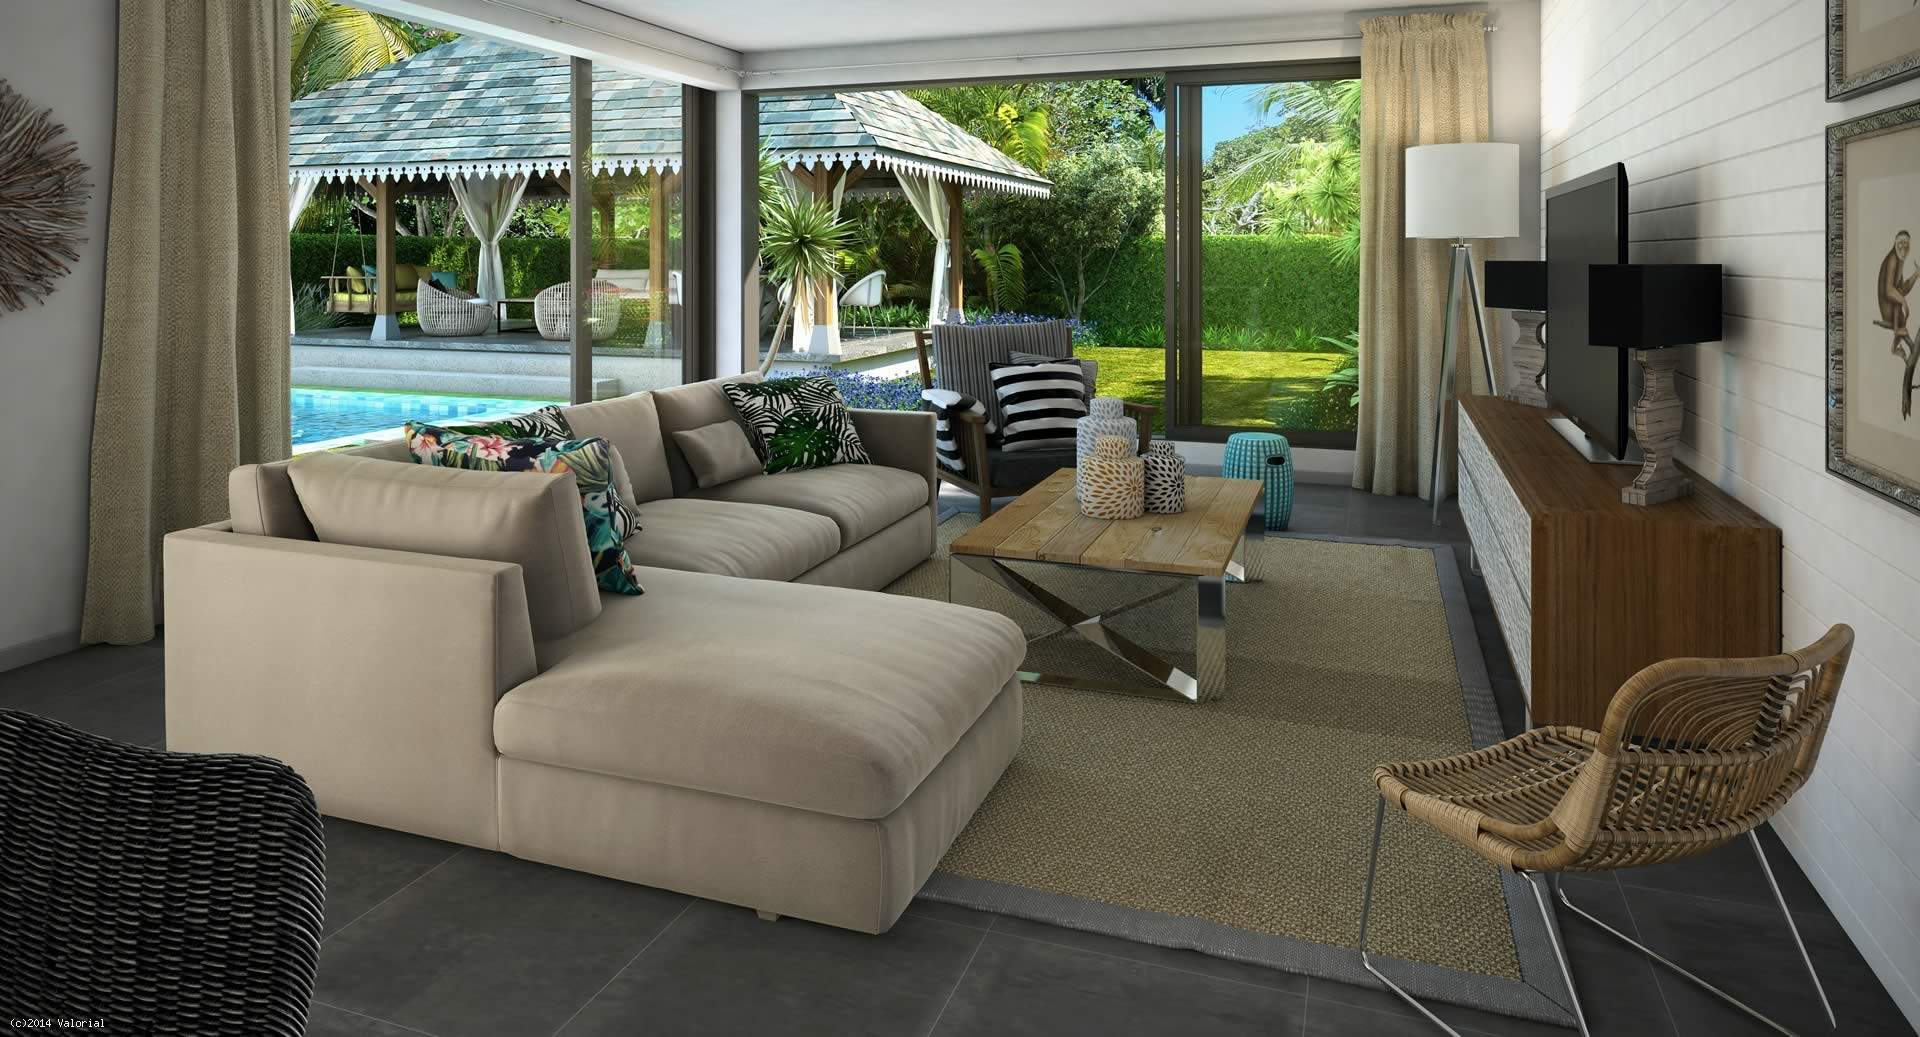 marguery-prestige-living54083cd0030a3 (1)